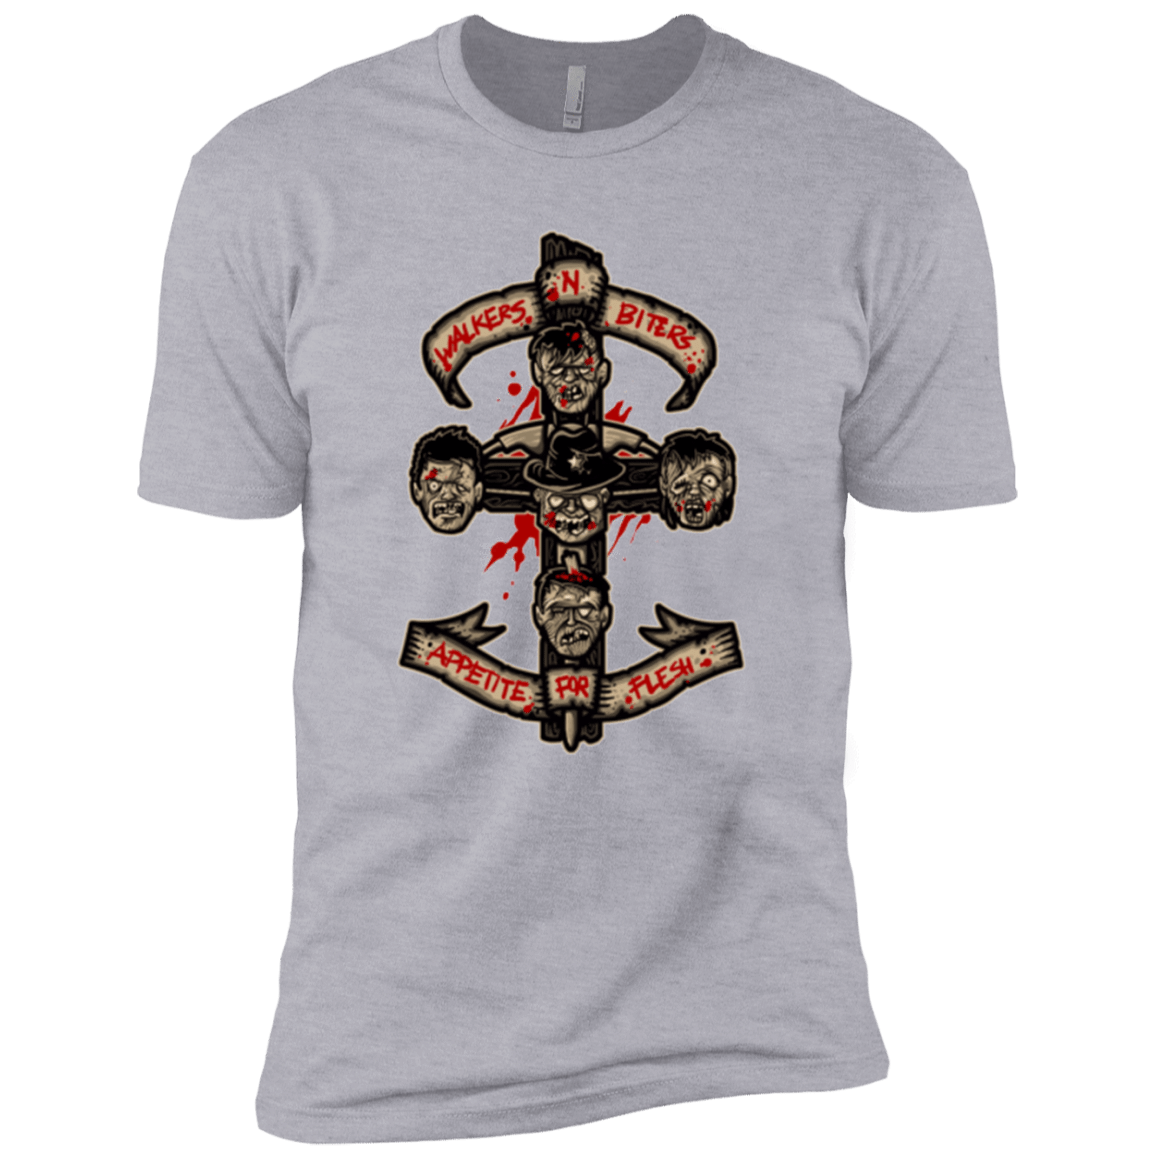 APPETITE FOR FLESH Boys Premium T-Shirt